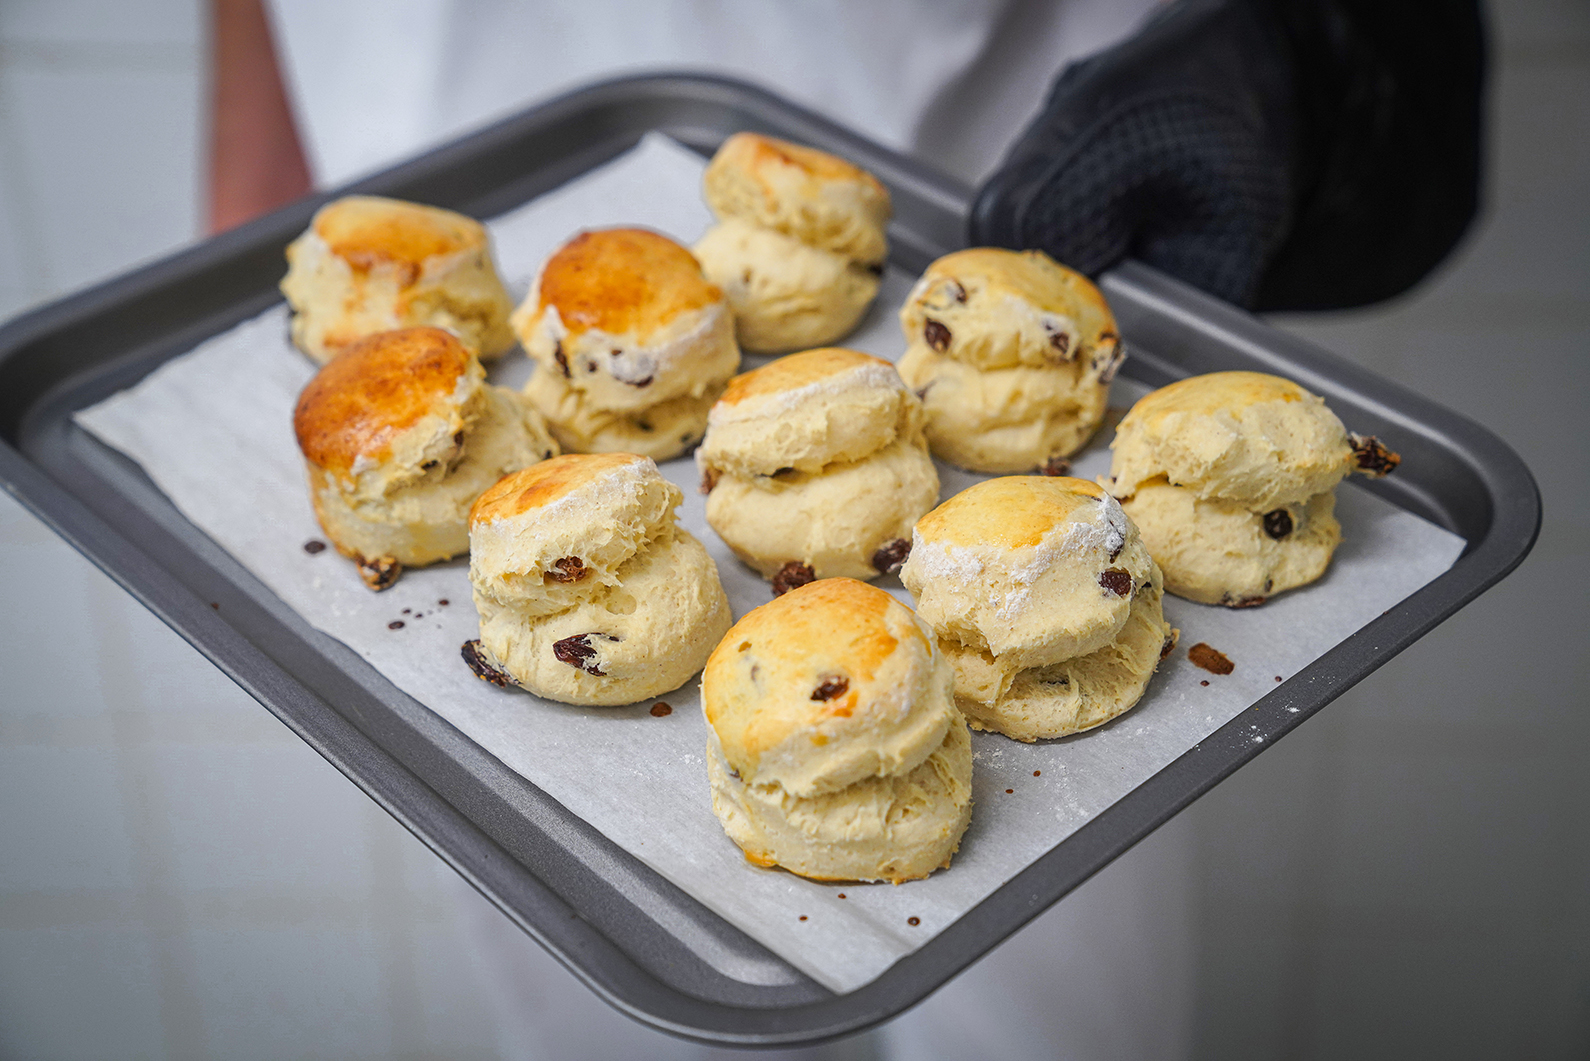 davina-steel-bakery-fruit-scone-baked-hi-res.jpg